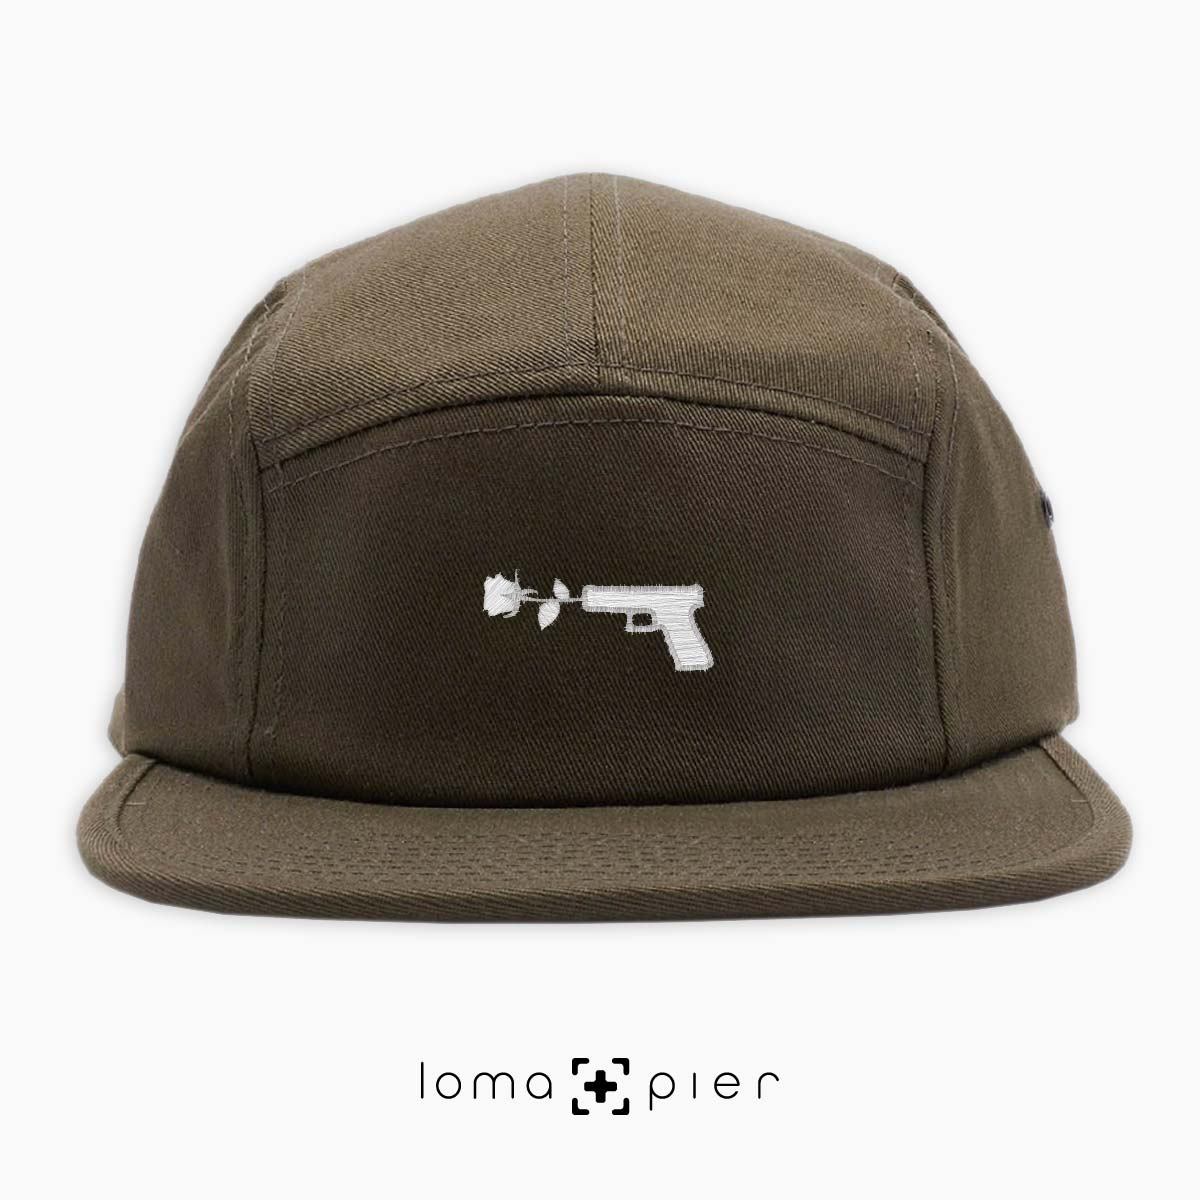 cotton 5-panel hat with GUN FLOWER icon by loma+pier hat shop